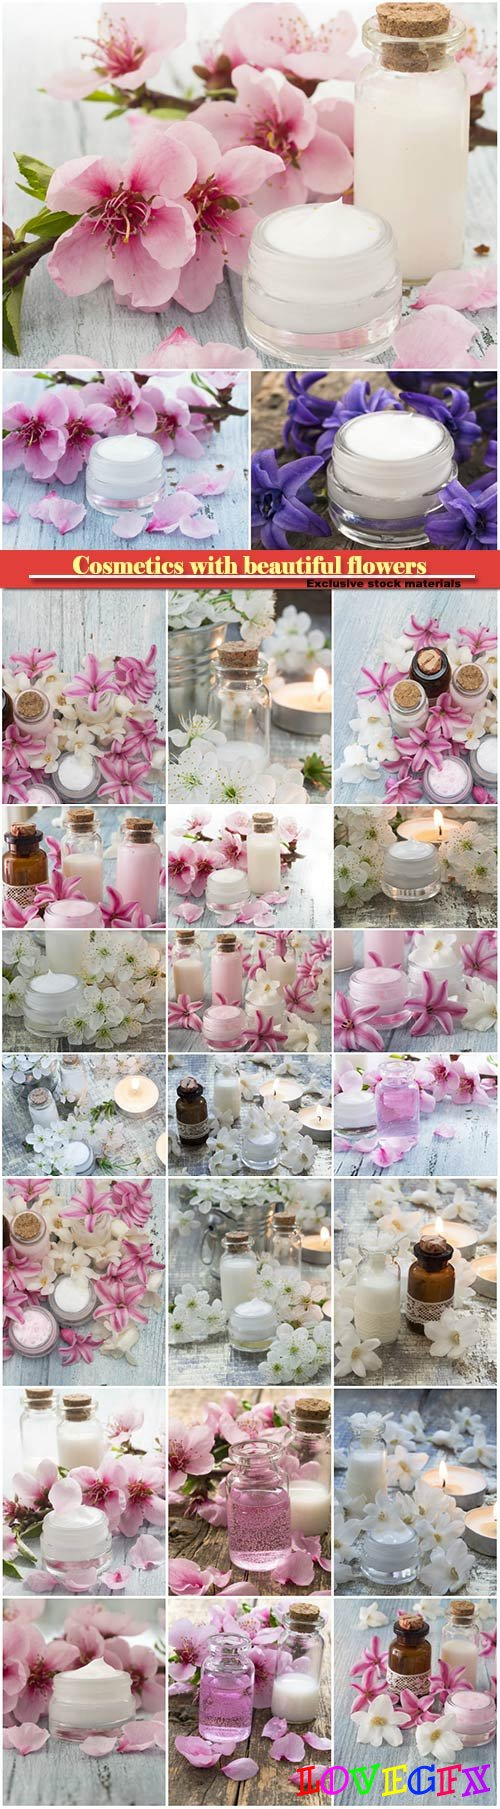 Cosmetics with beautiful flowers on a wooden background